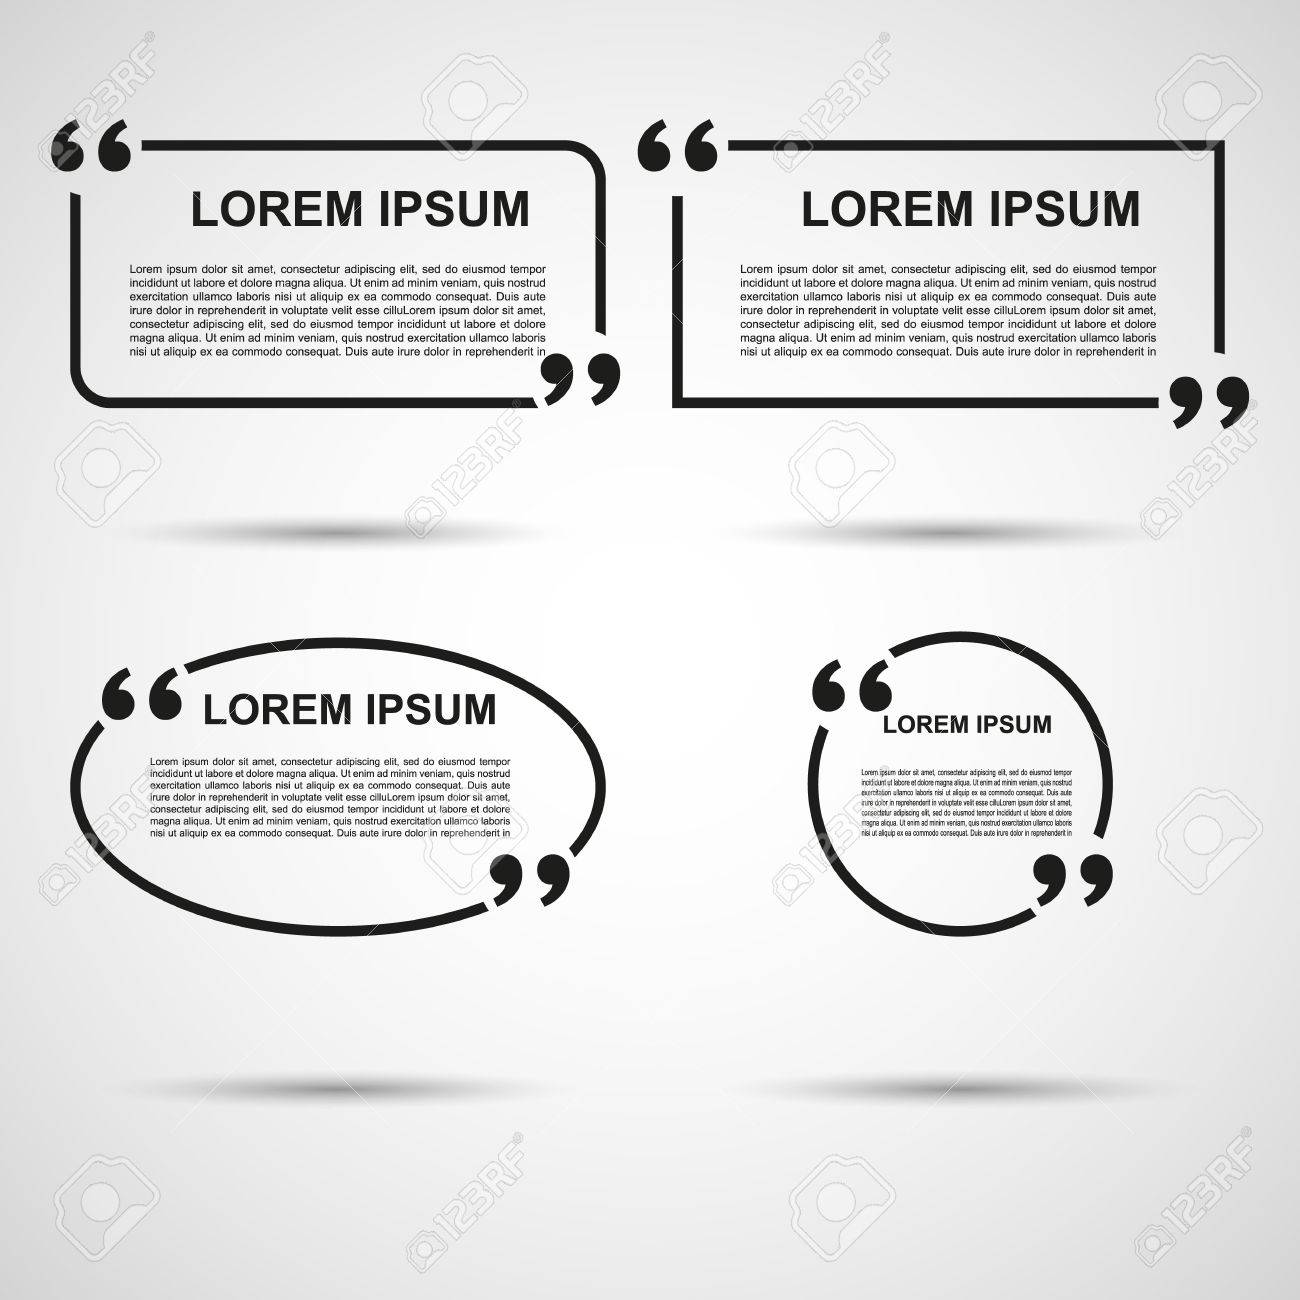 quote blank template quote bubble empty template circle quote blank template quote bubble empty template circle business card template paper